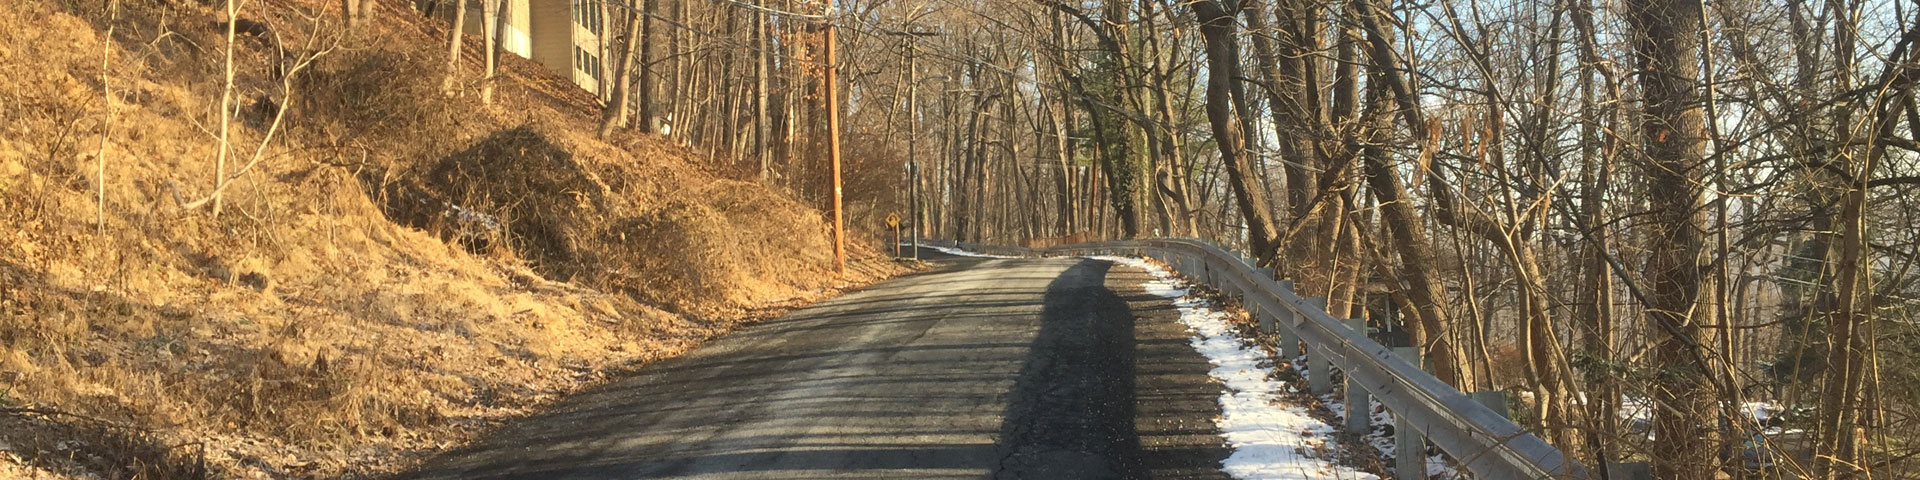 A back country road, with a thin line of snow on the right shoulder.